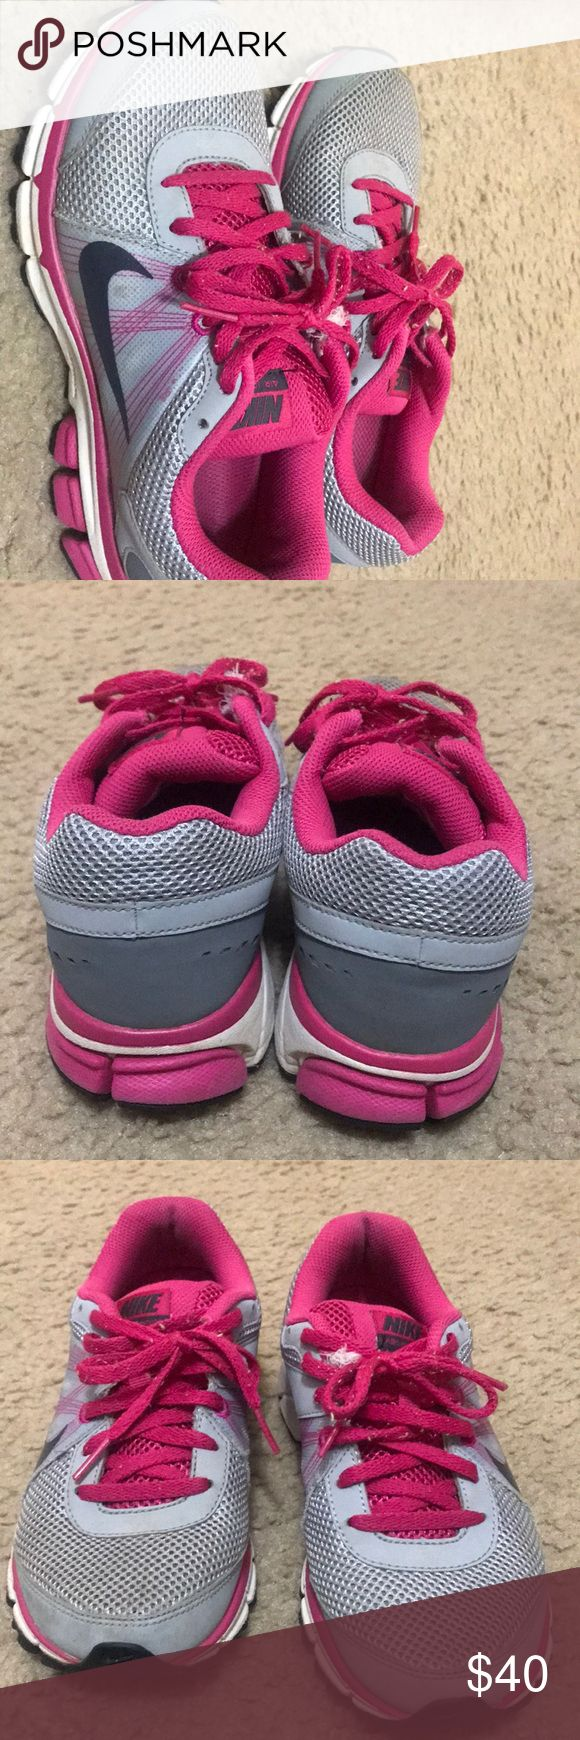 Nike Tennis Shoes Size 6.5 Nike shoes for sell. Do not wear anymore and hardly worn. Super comfortable and super cute! Nike Shoes Athletic Shoes